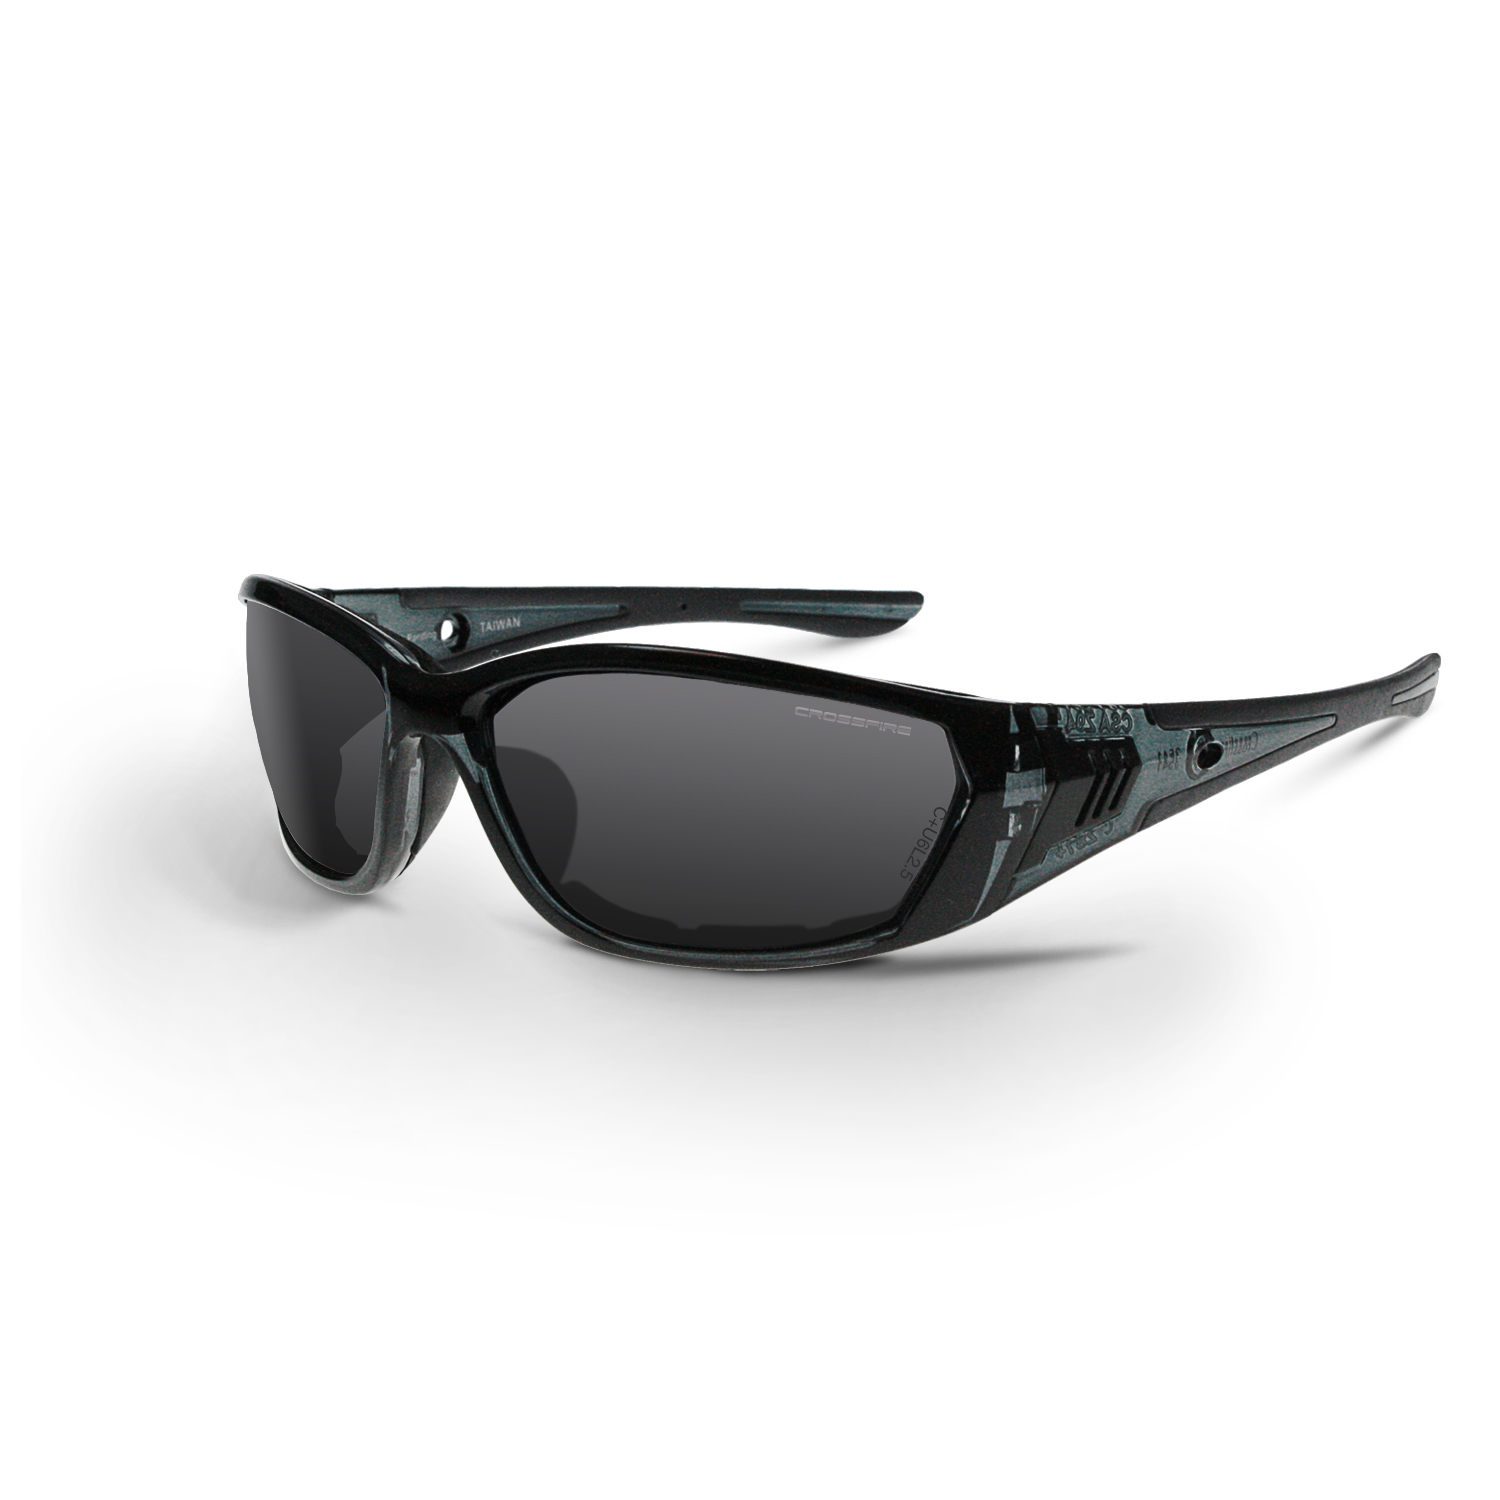 Crossfire 710 Foam Lined Safety Eyewear